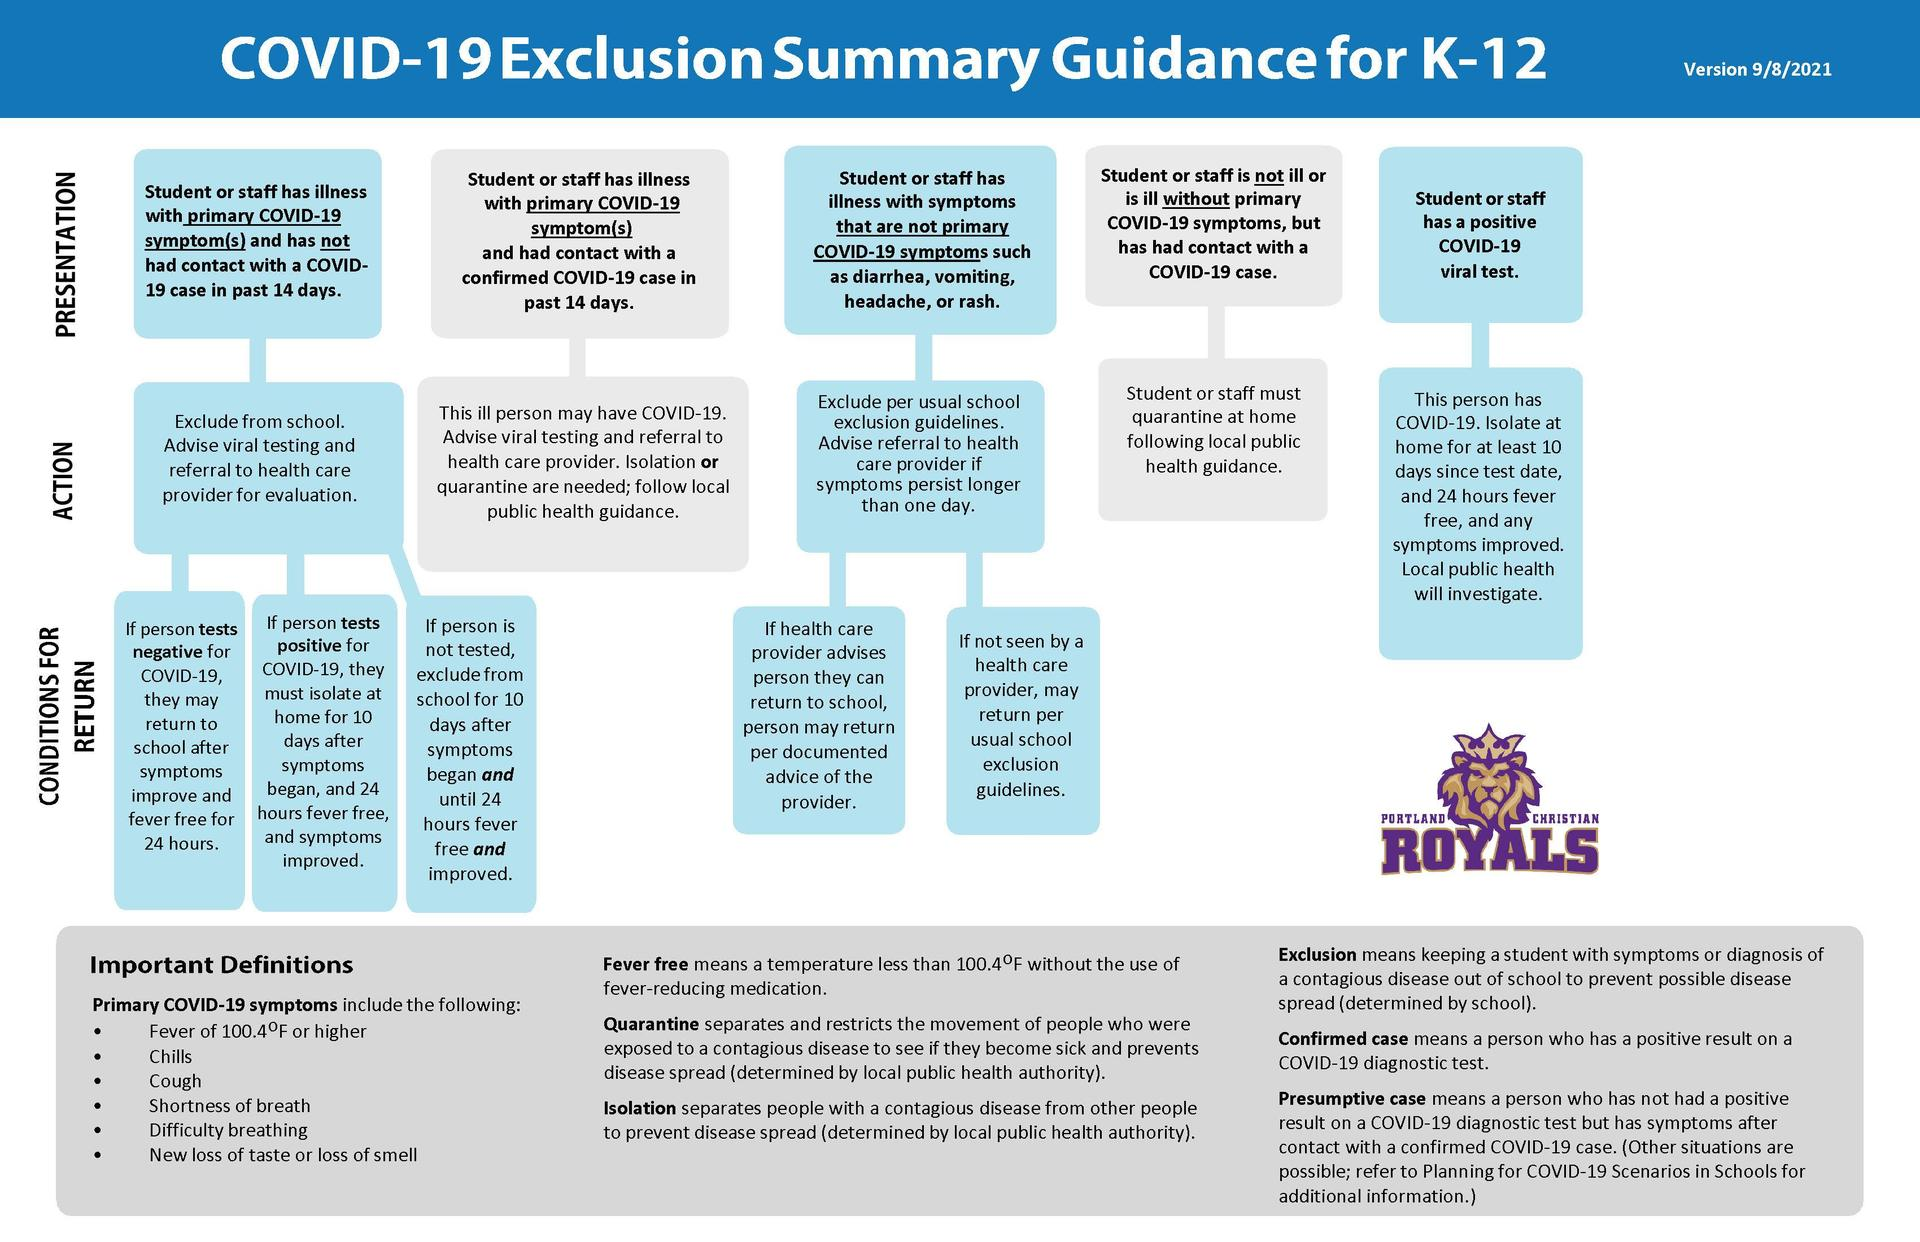 Covid 19 Exclusion Summary Chart 2021 September version